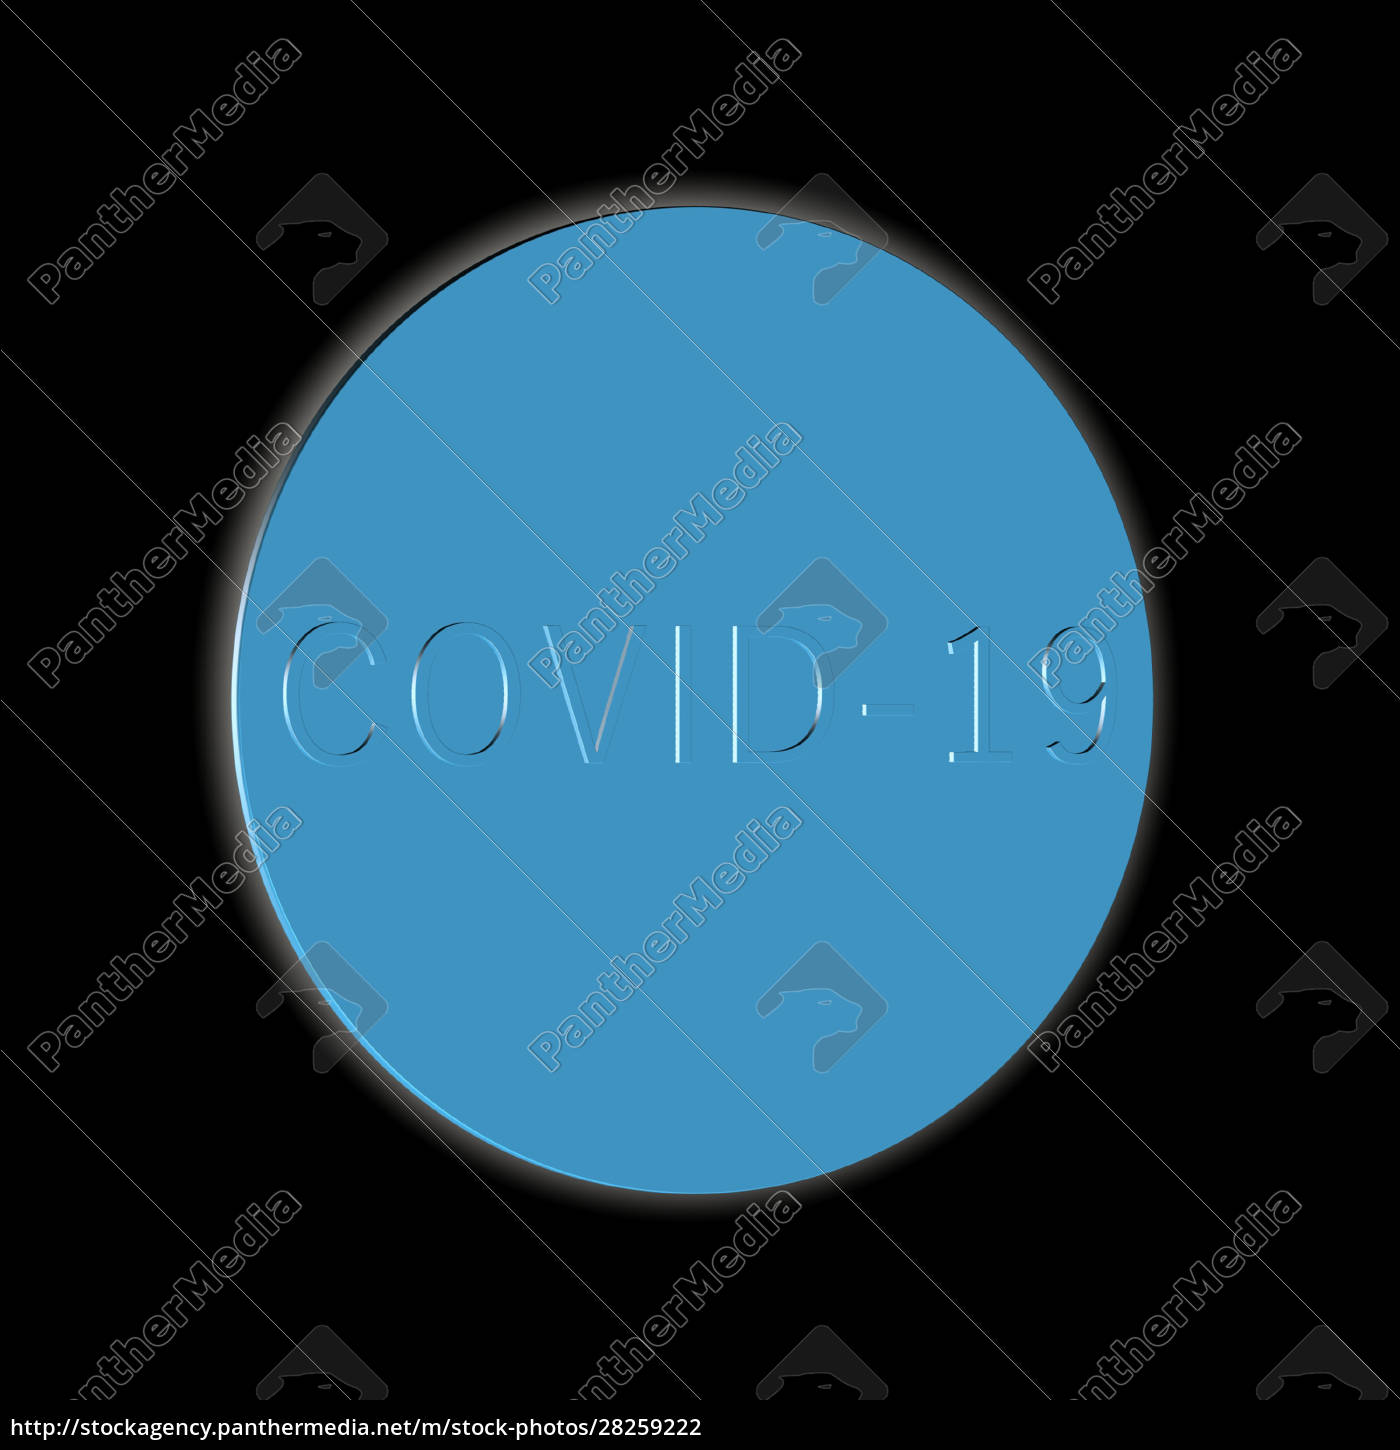 covid-19, -, word, or, text, as - 28259222